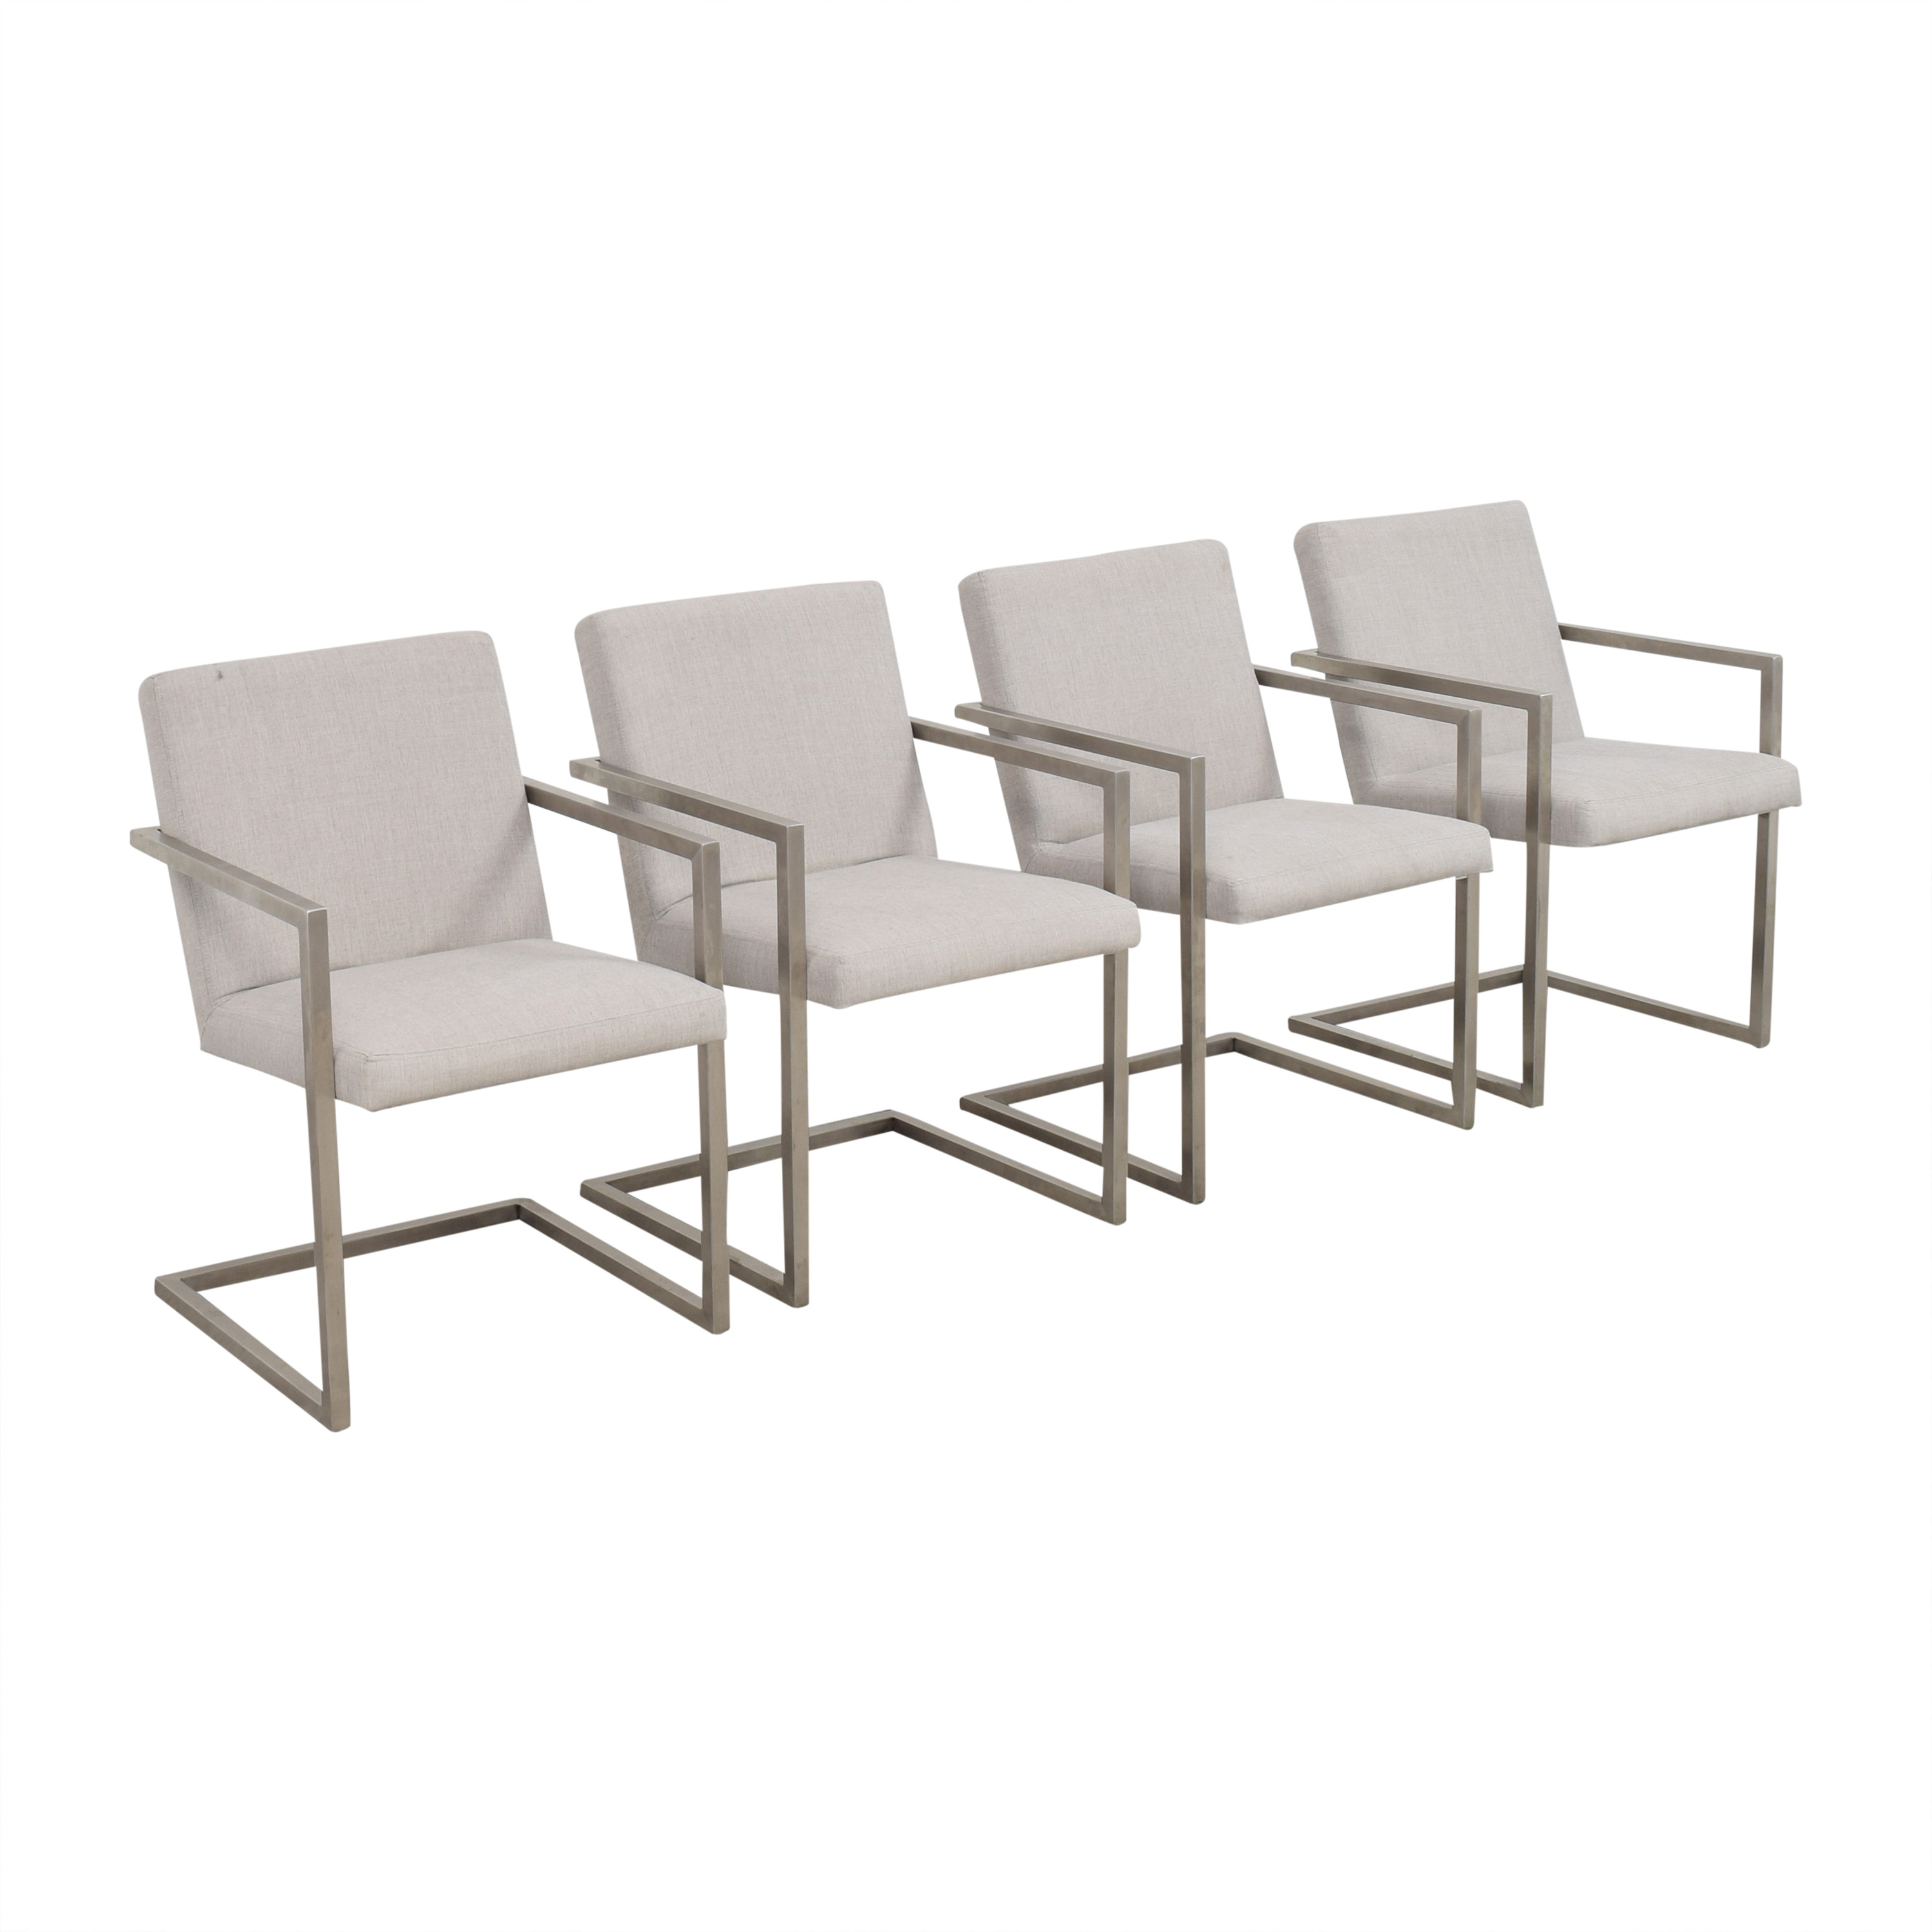 Room & Board Room & Board Lira Dining Arm Chairs dimensions